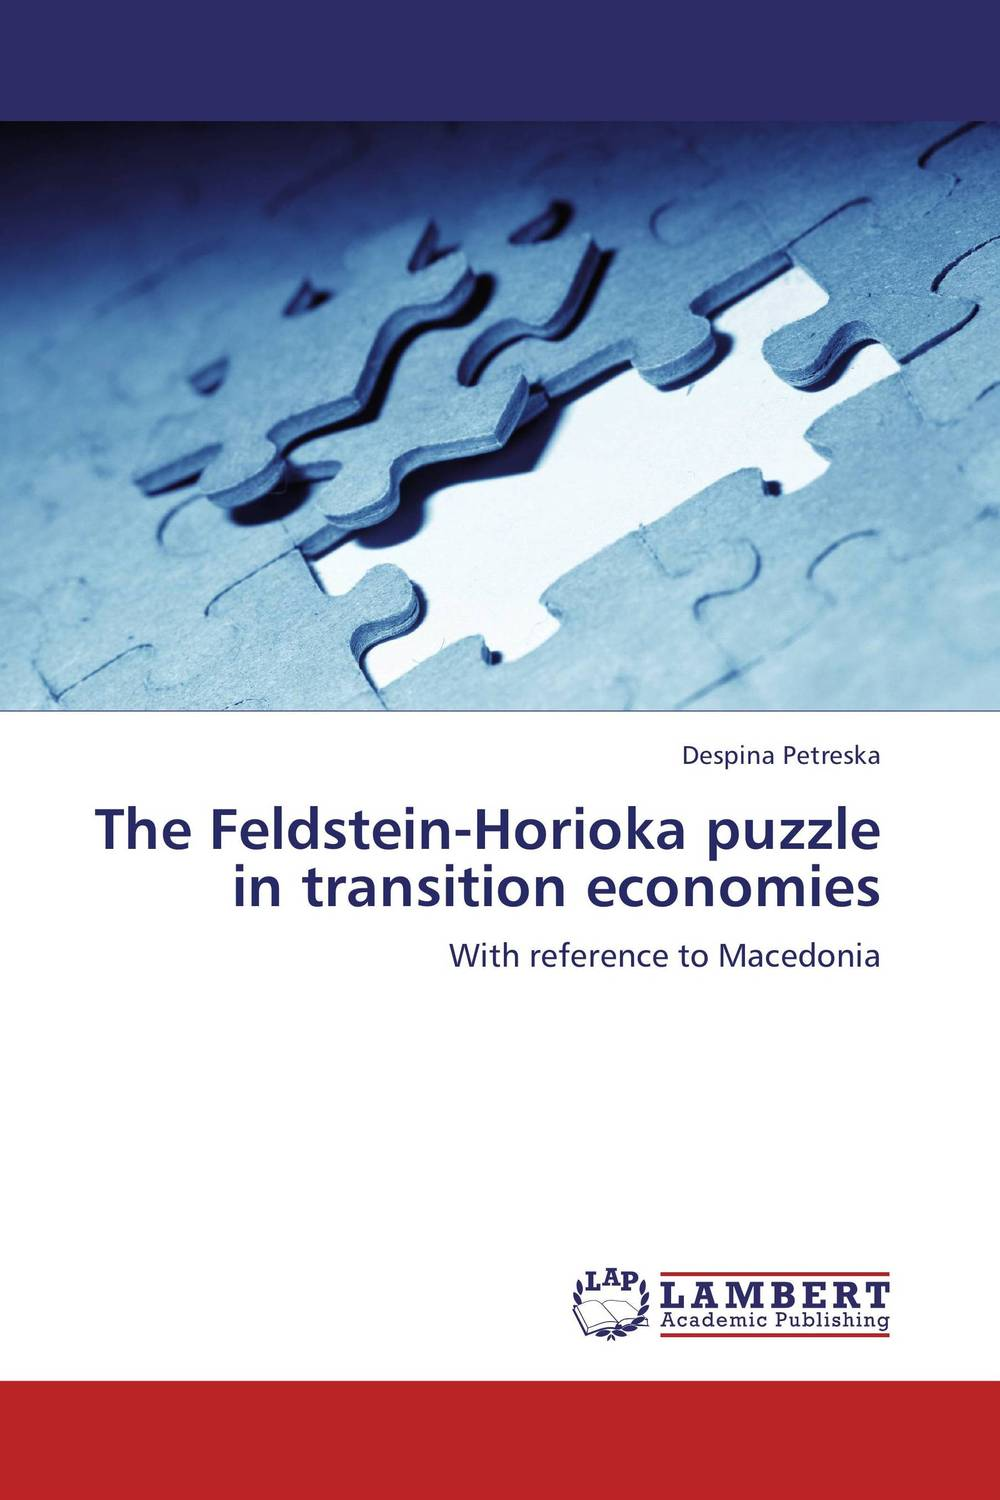 The Feldstein-Horioka puzzle in transition economies the failure of economic nationalism in slovenia s transition